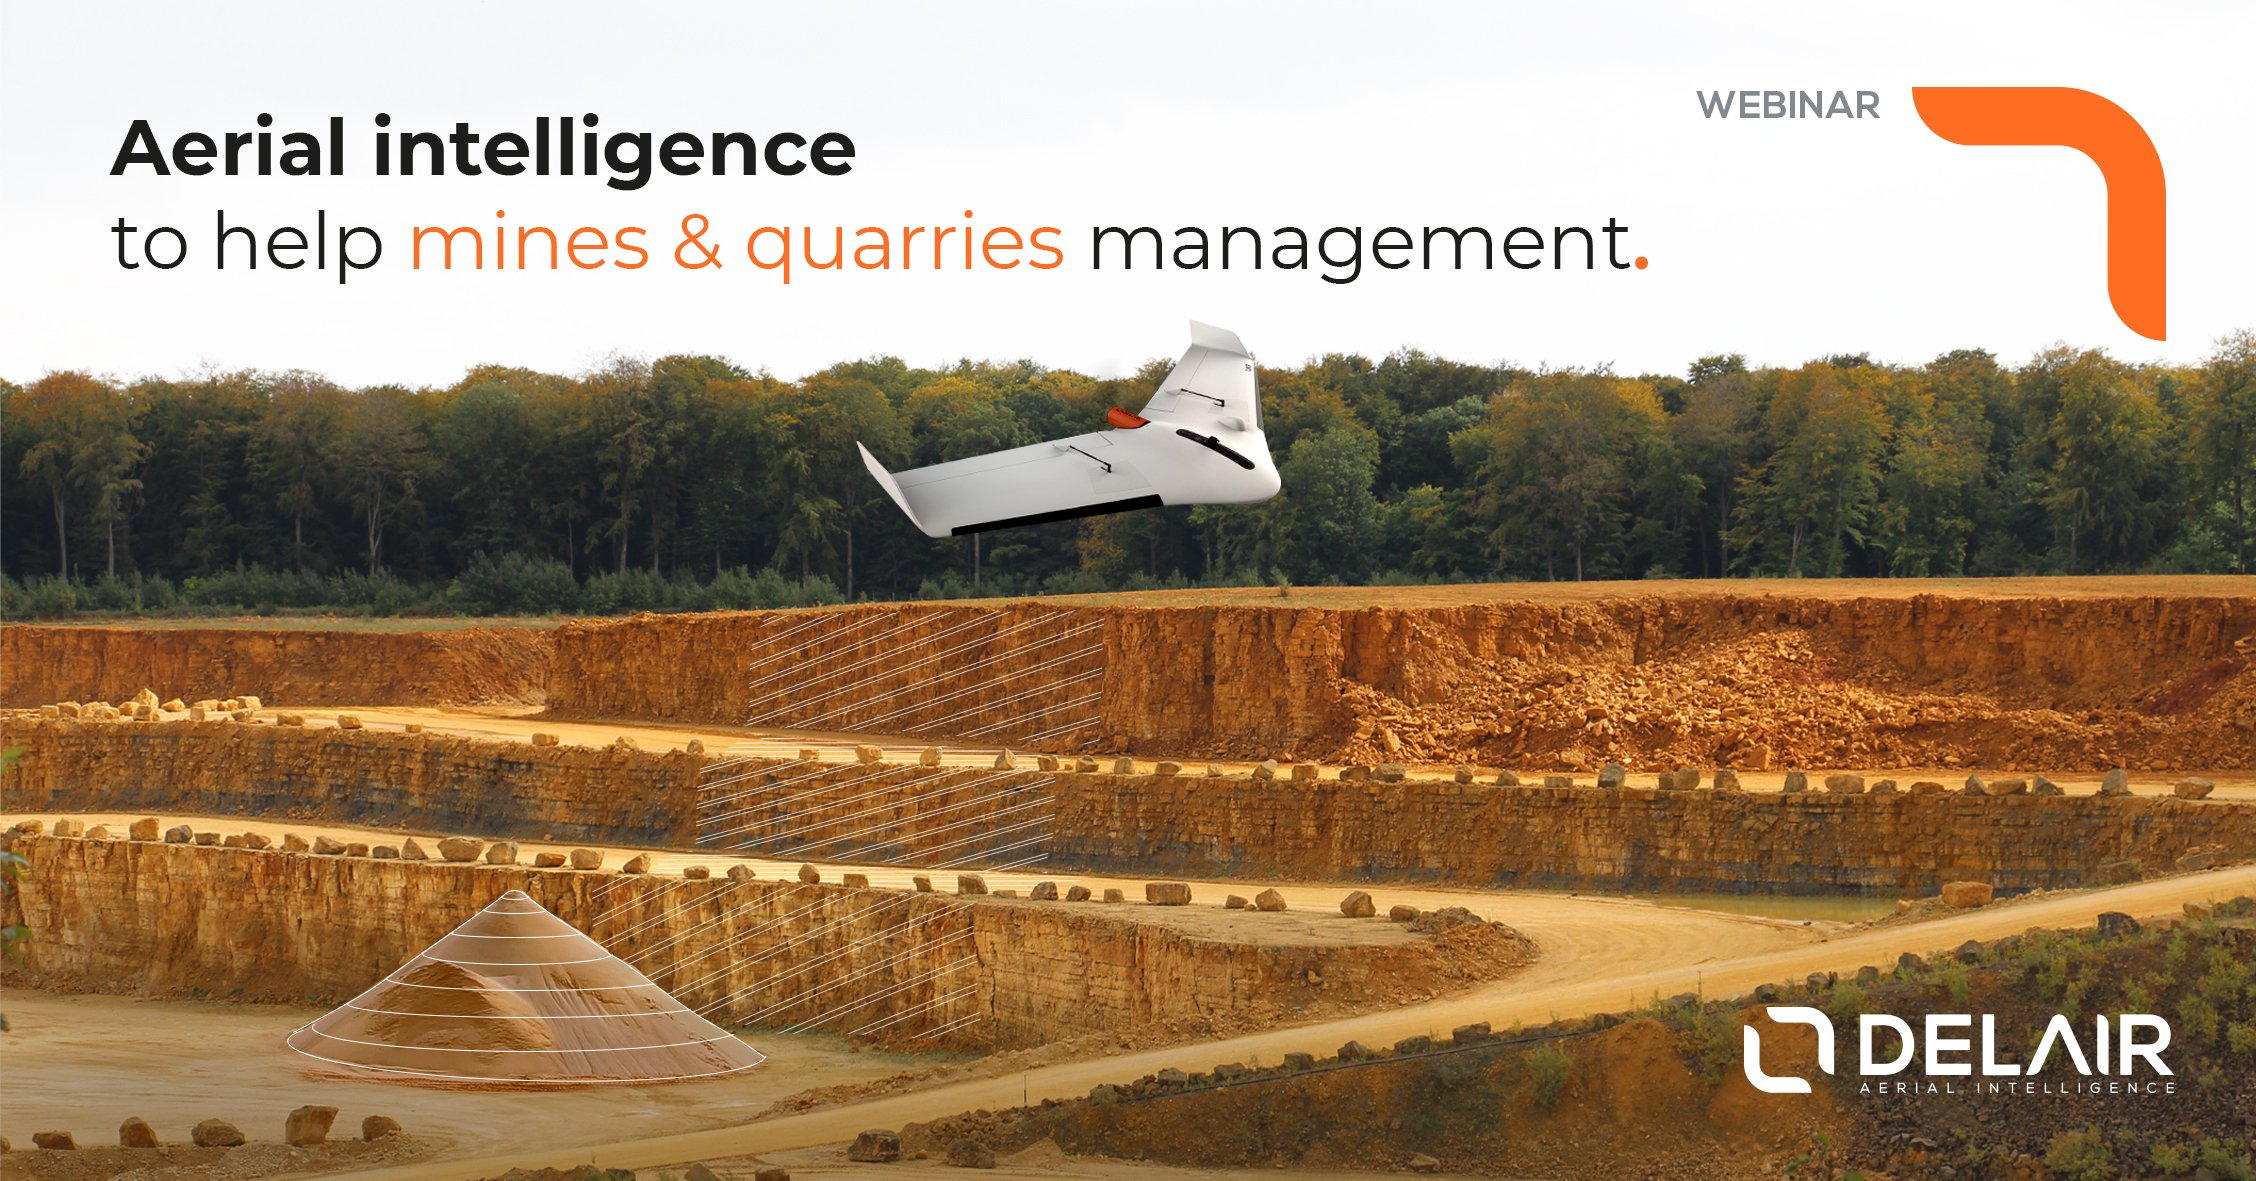 Webinar Aerial intelligence to help mines and quarries management